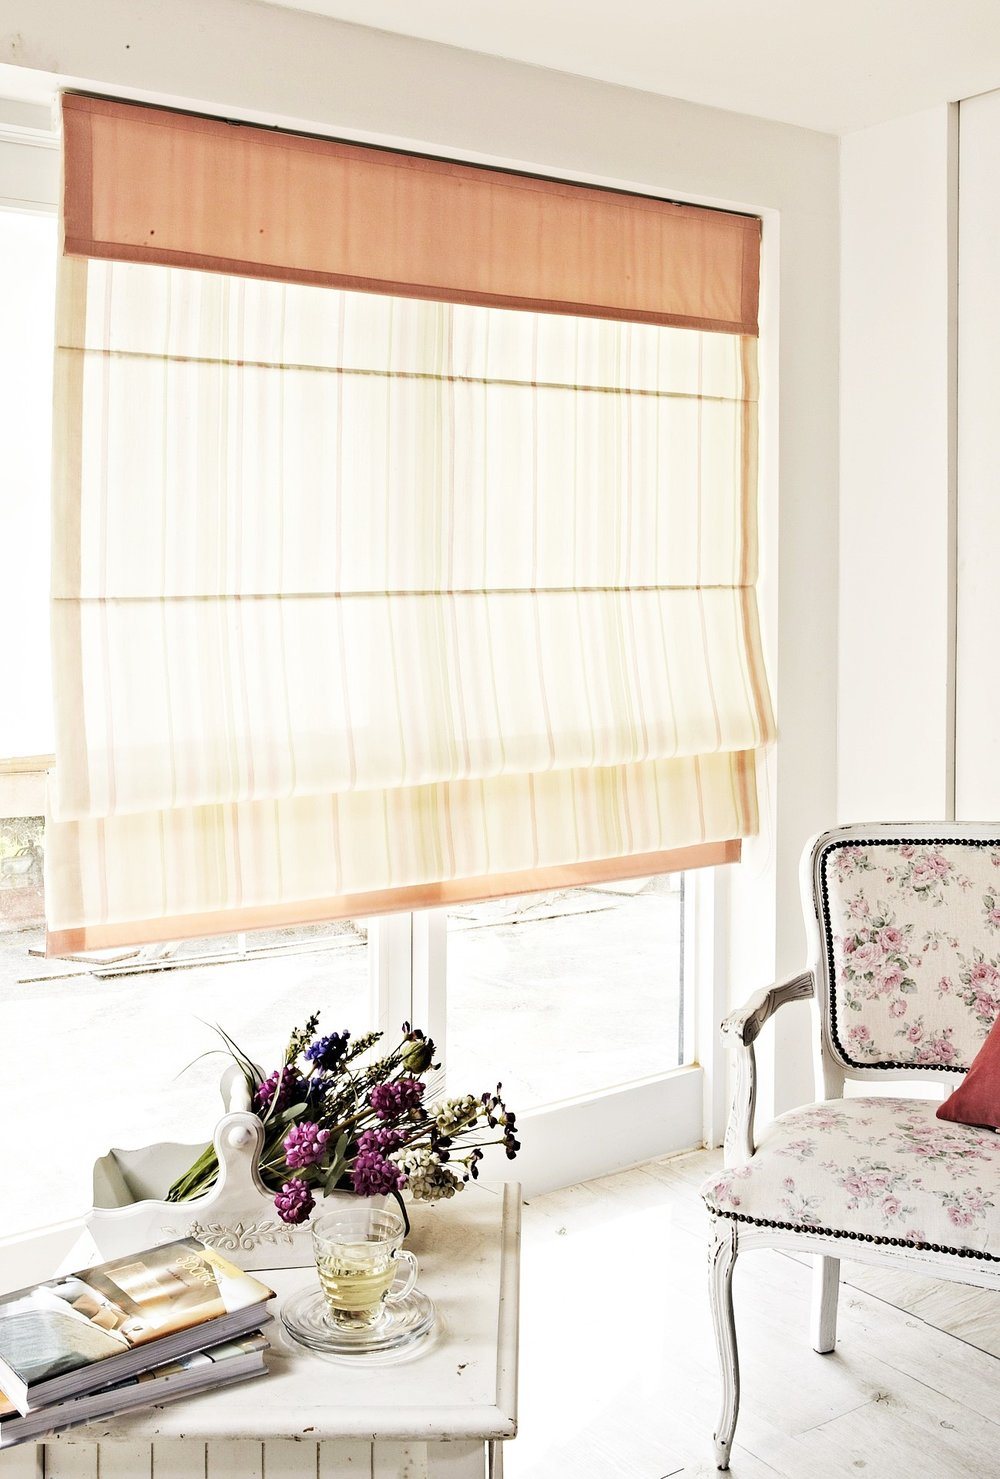 window treatments_4.jpg